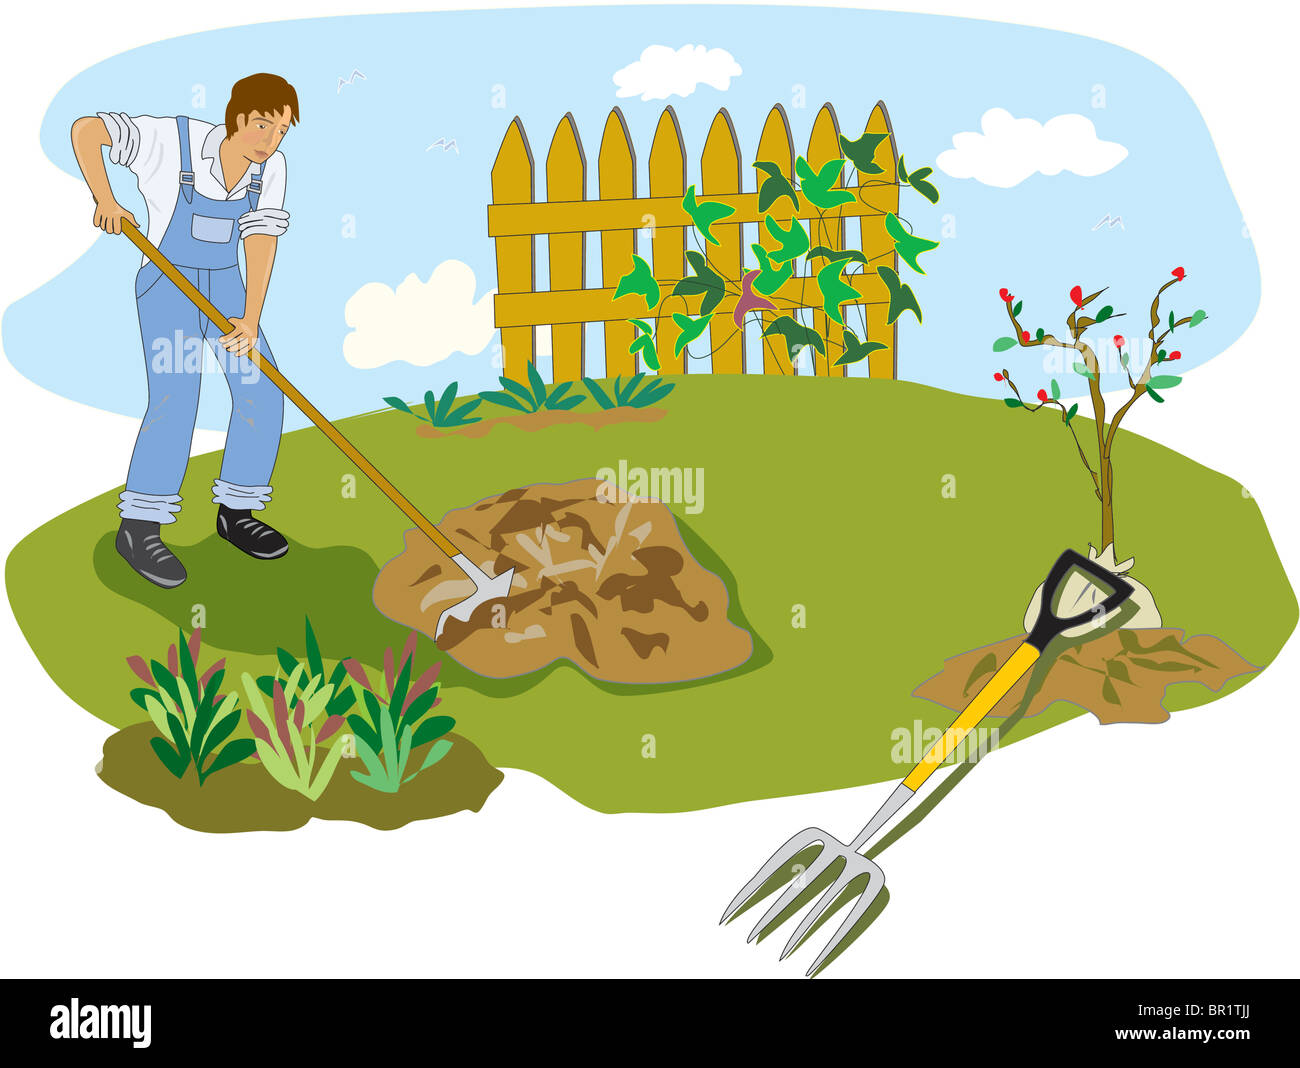 An illustration of a man raking leaves in his garden Stock Photo